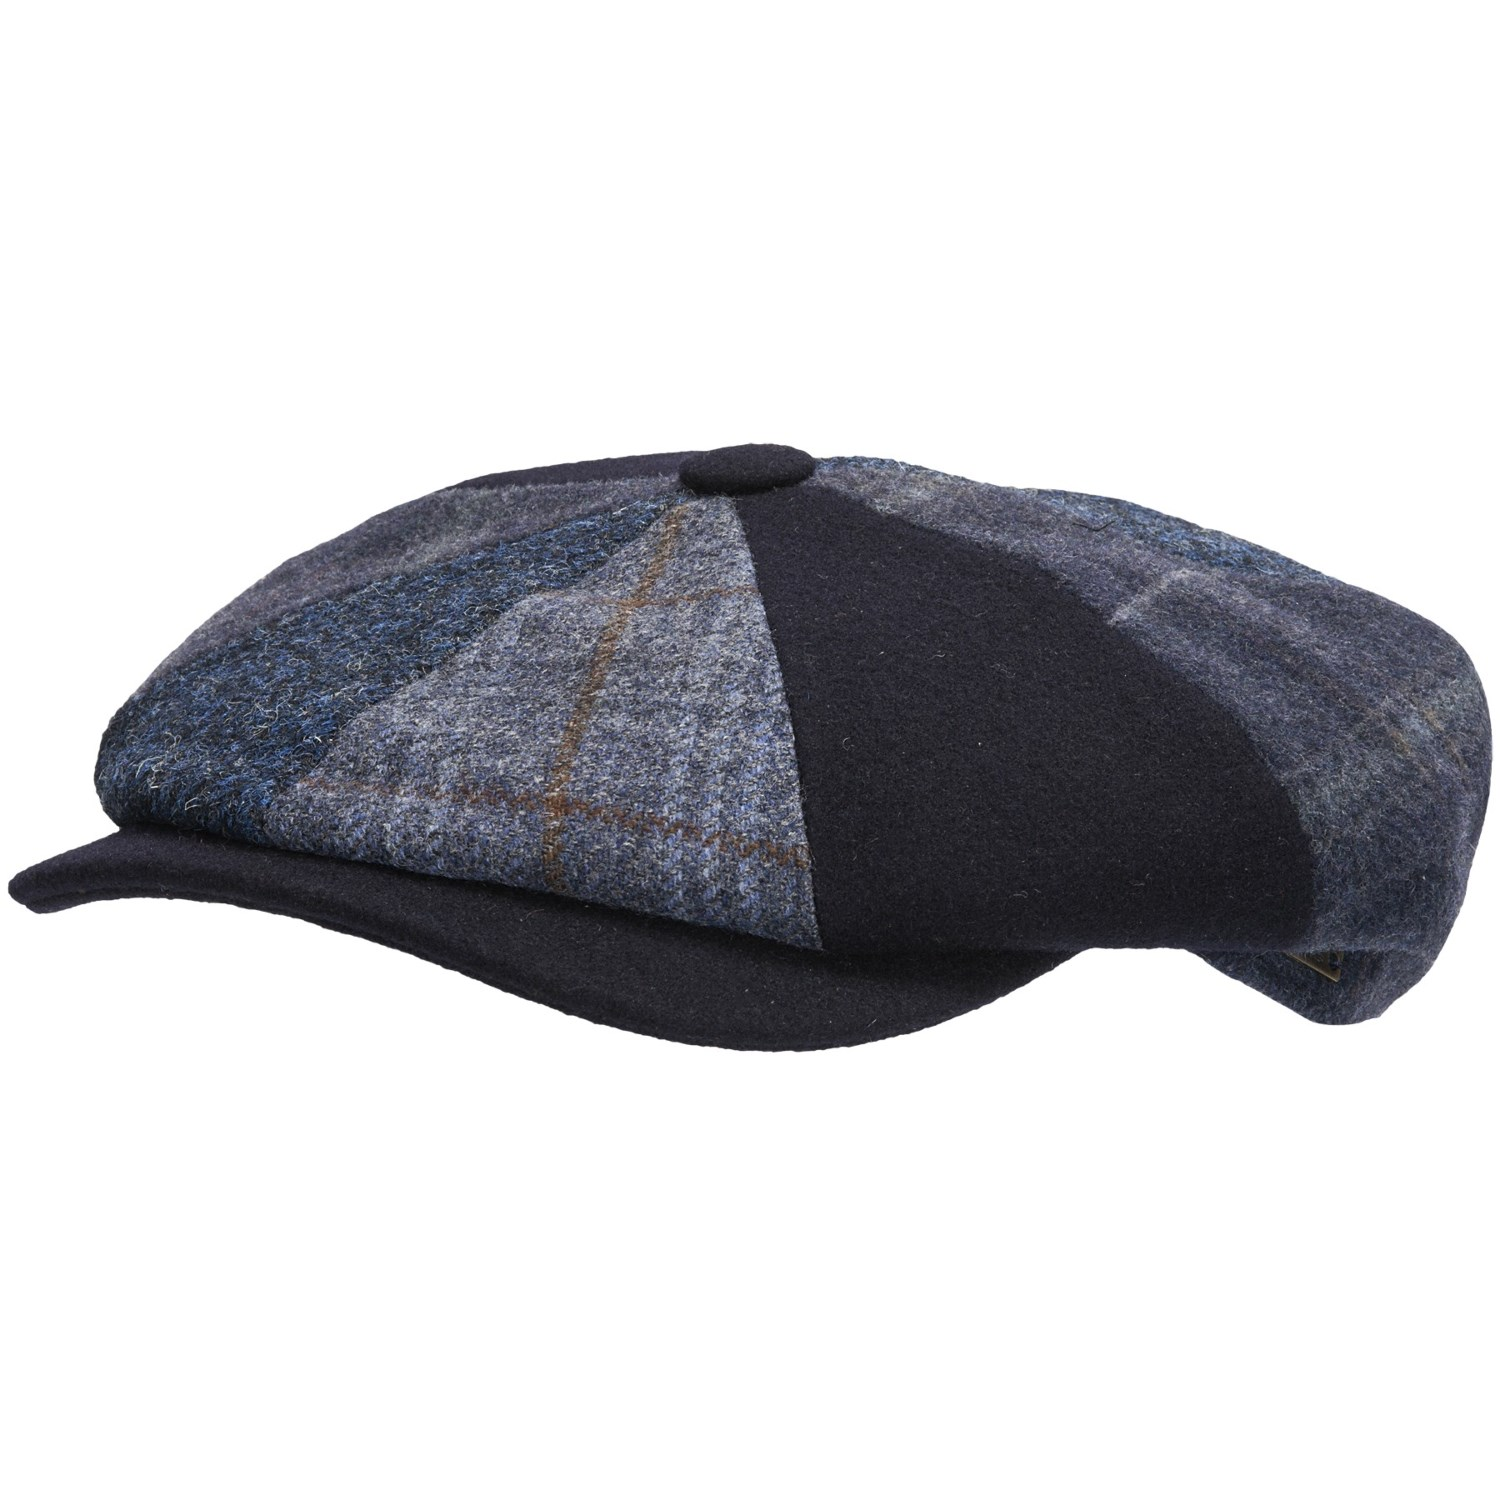 Bluelans Fashion Classic Newsboy Beret Hat Men's Knitted Outdoor Casual Octagonal Cap. Sold by Bluelans + 1. $ $ - $ Bluelans Men Casual Classic Solid Color Flat Cabbie Newsboy Ivy Hat Cotton Sun Beret Cap. Sold by Bluelans. $ MG Men's Wool Ivy Newsboy Cap Hat.